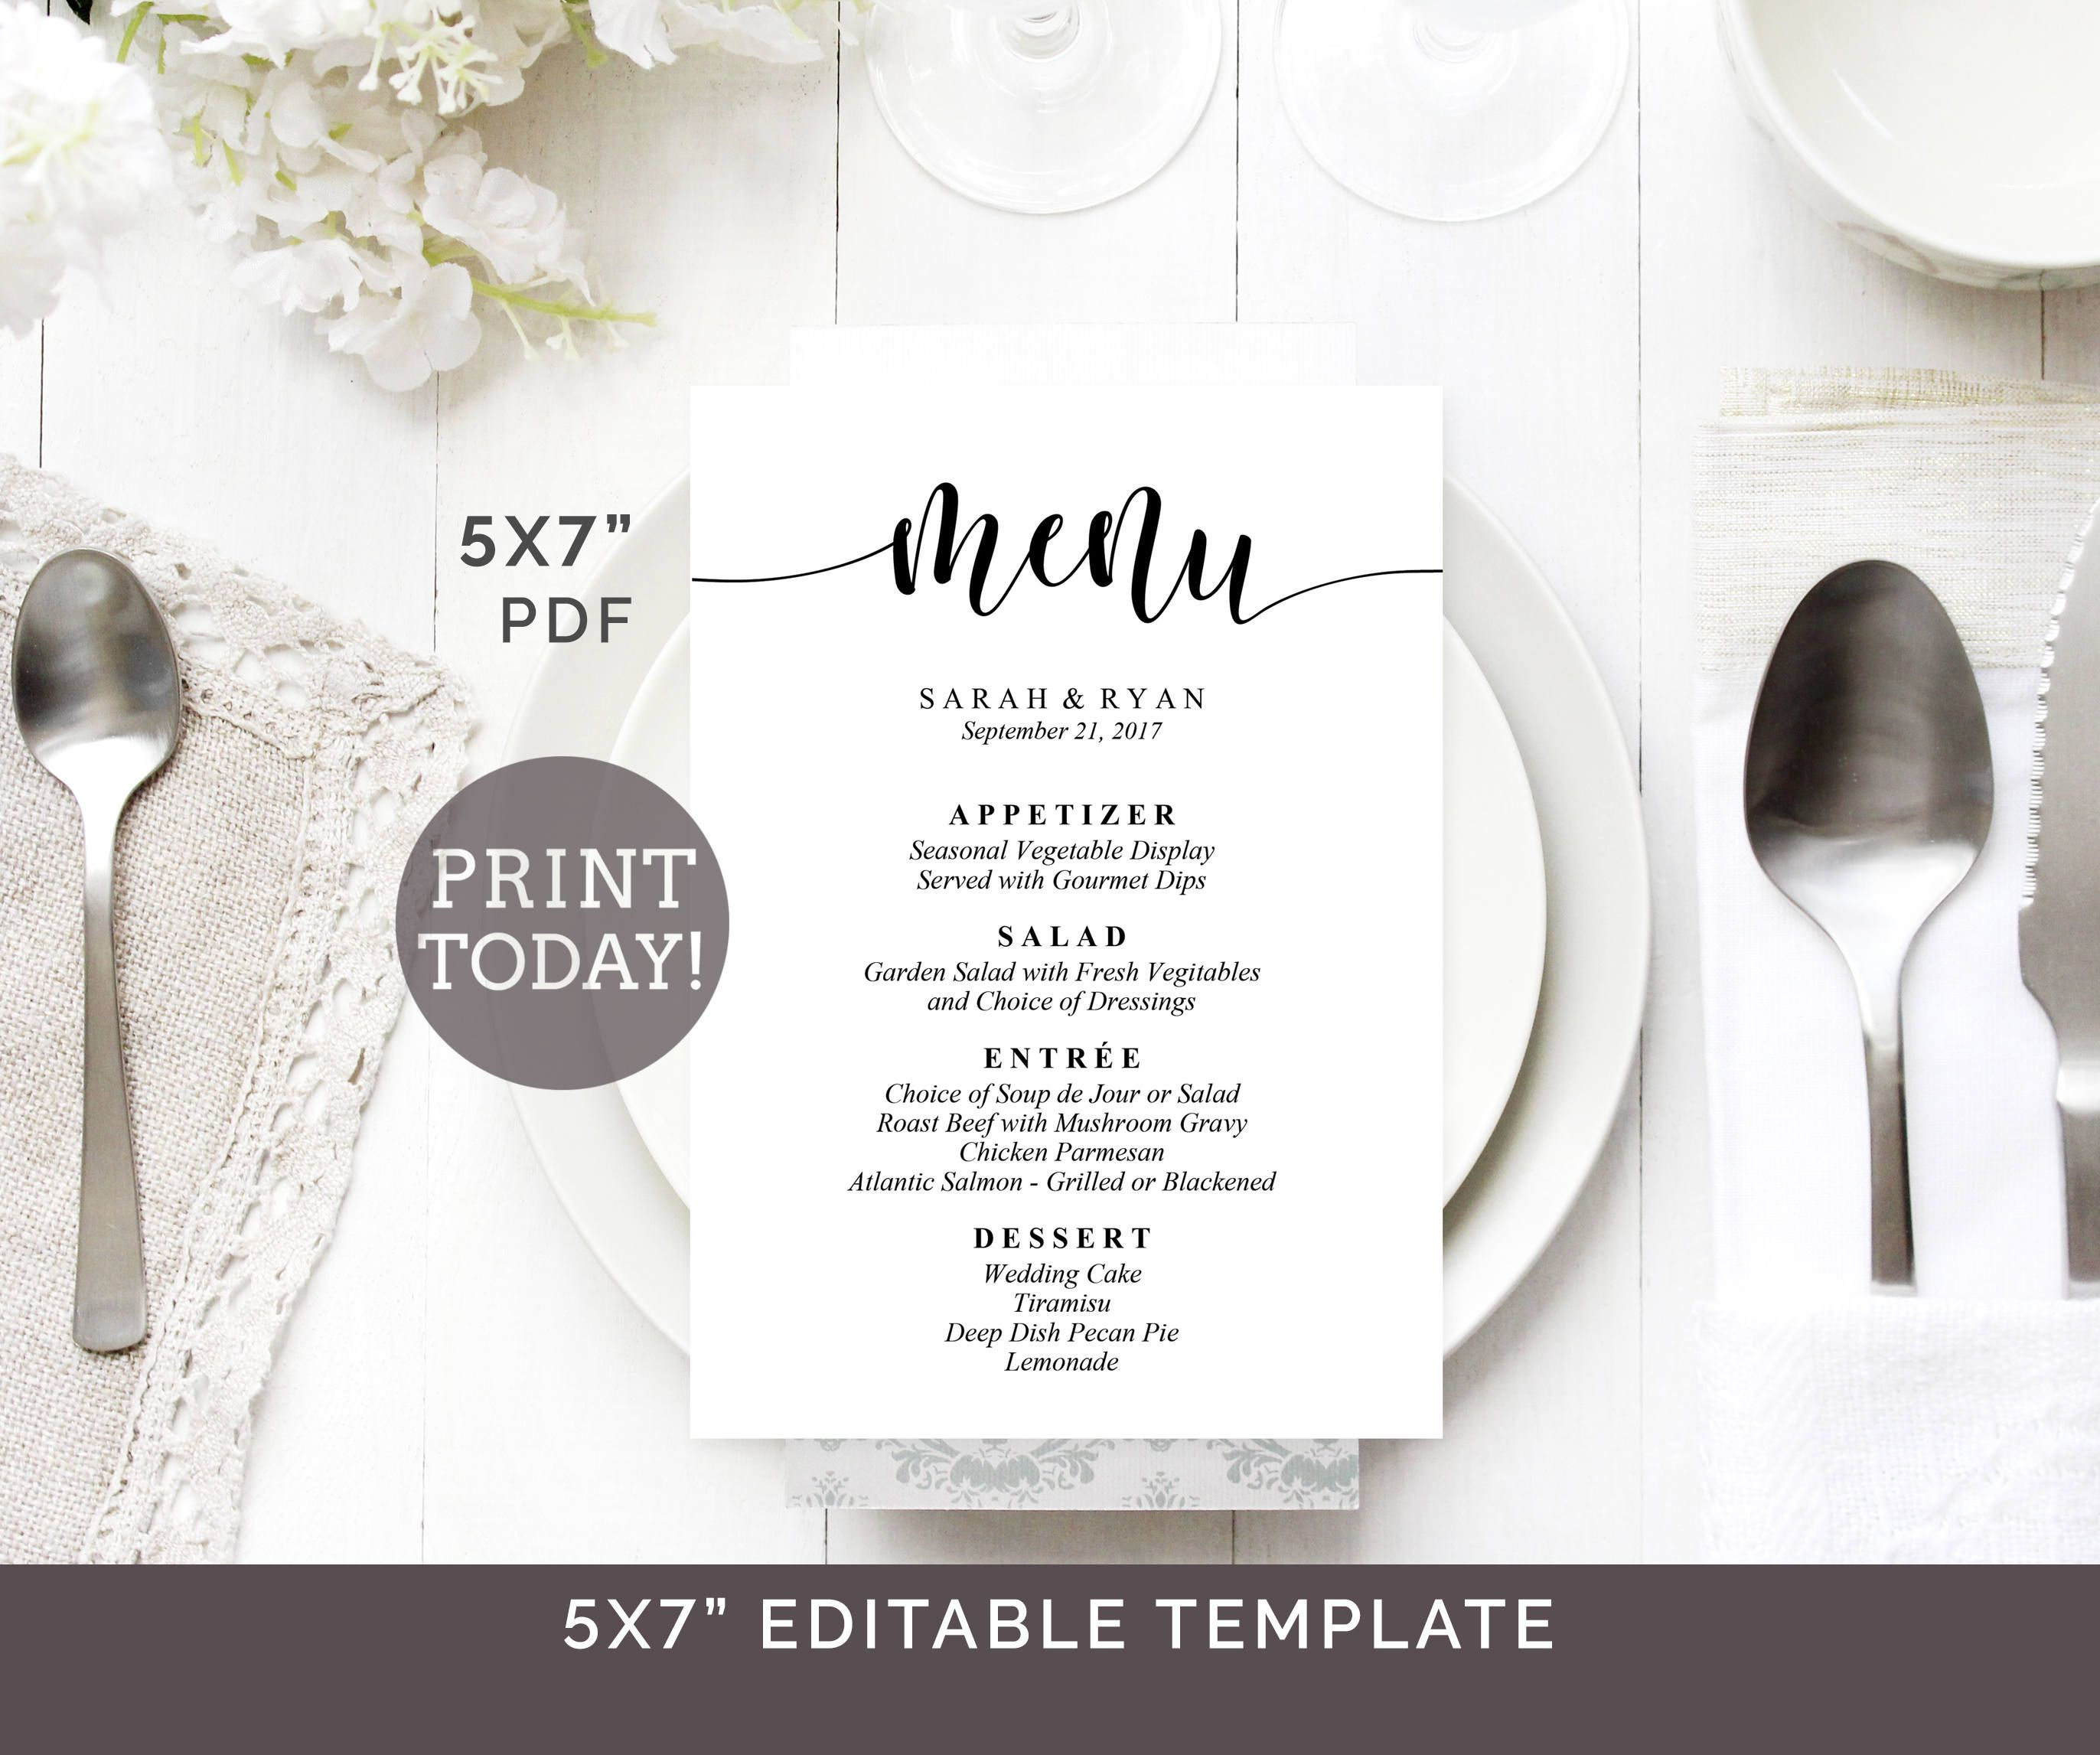 Wedding Menu Template X Menu Printable Editable Wedding Menu